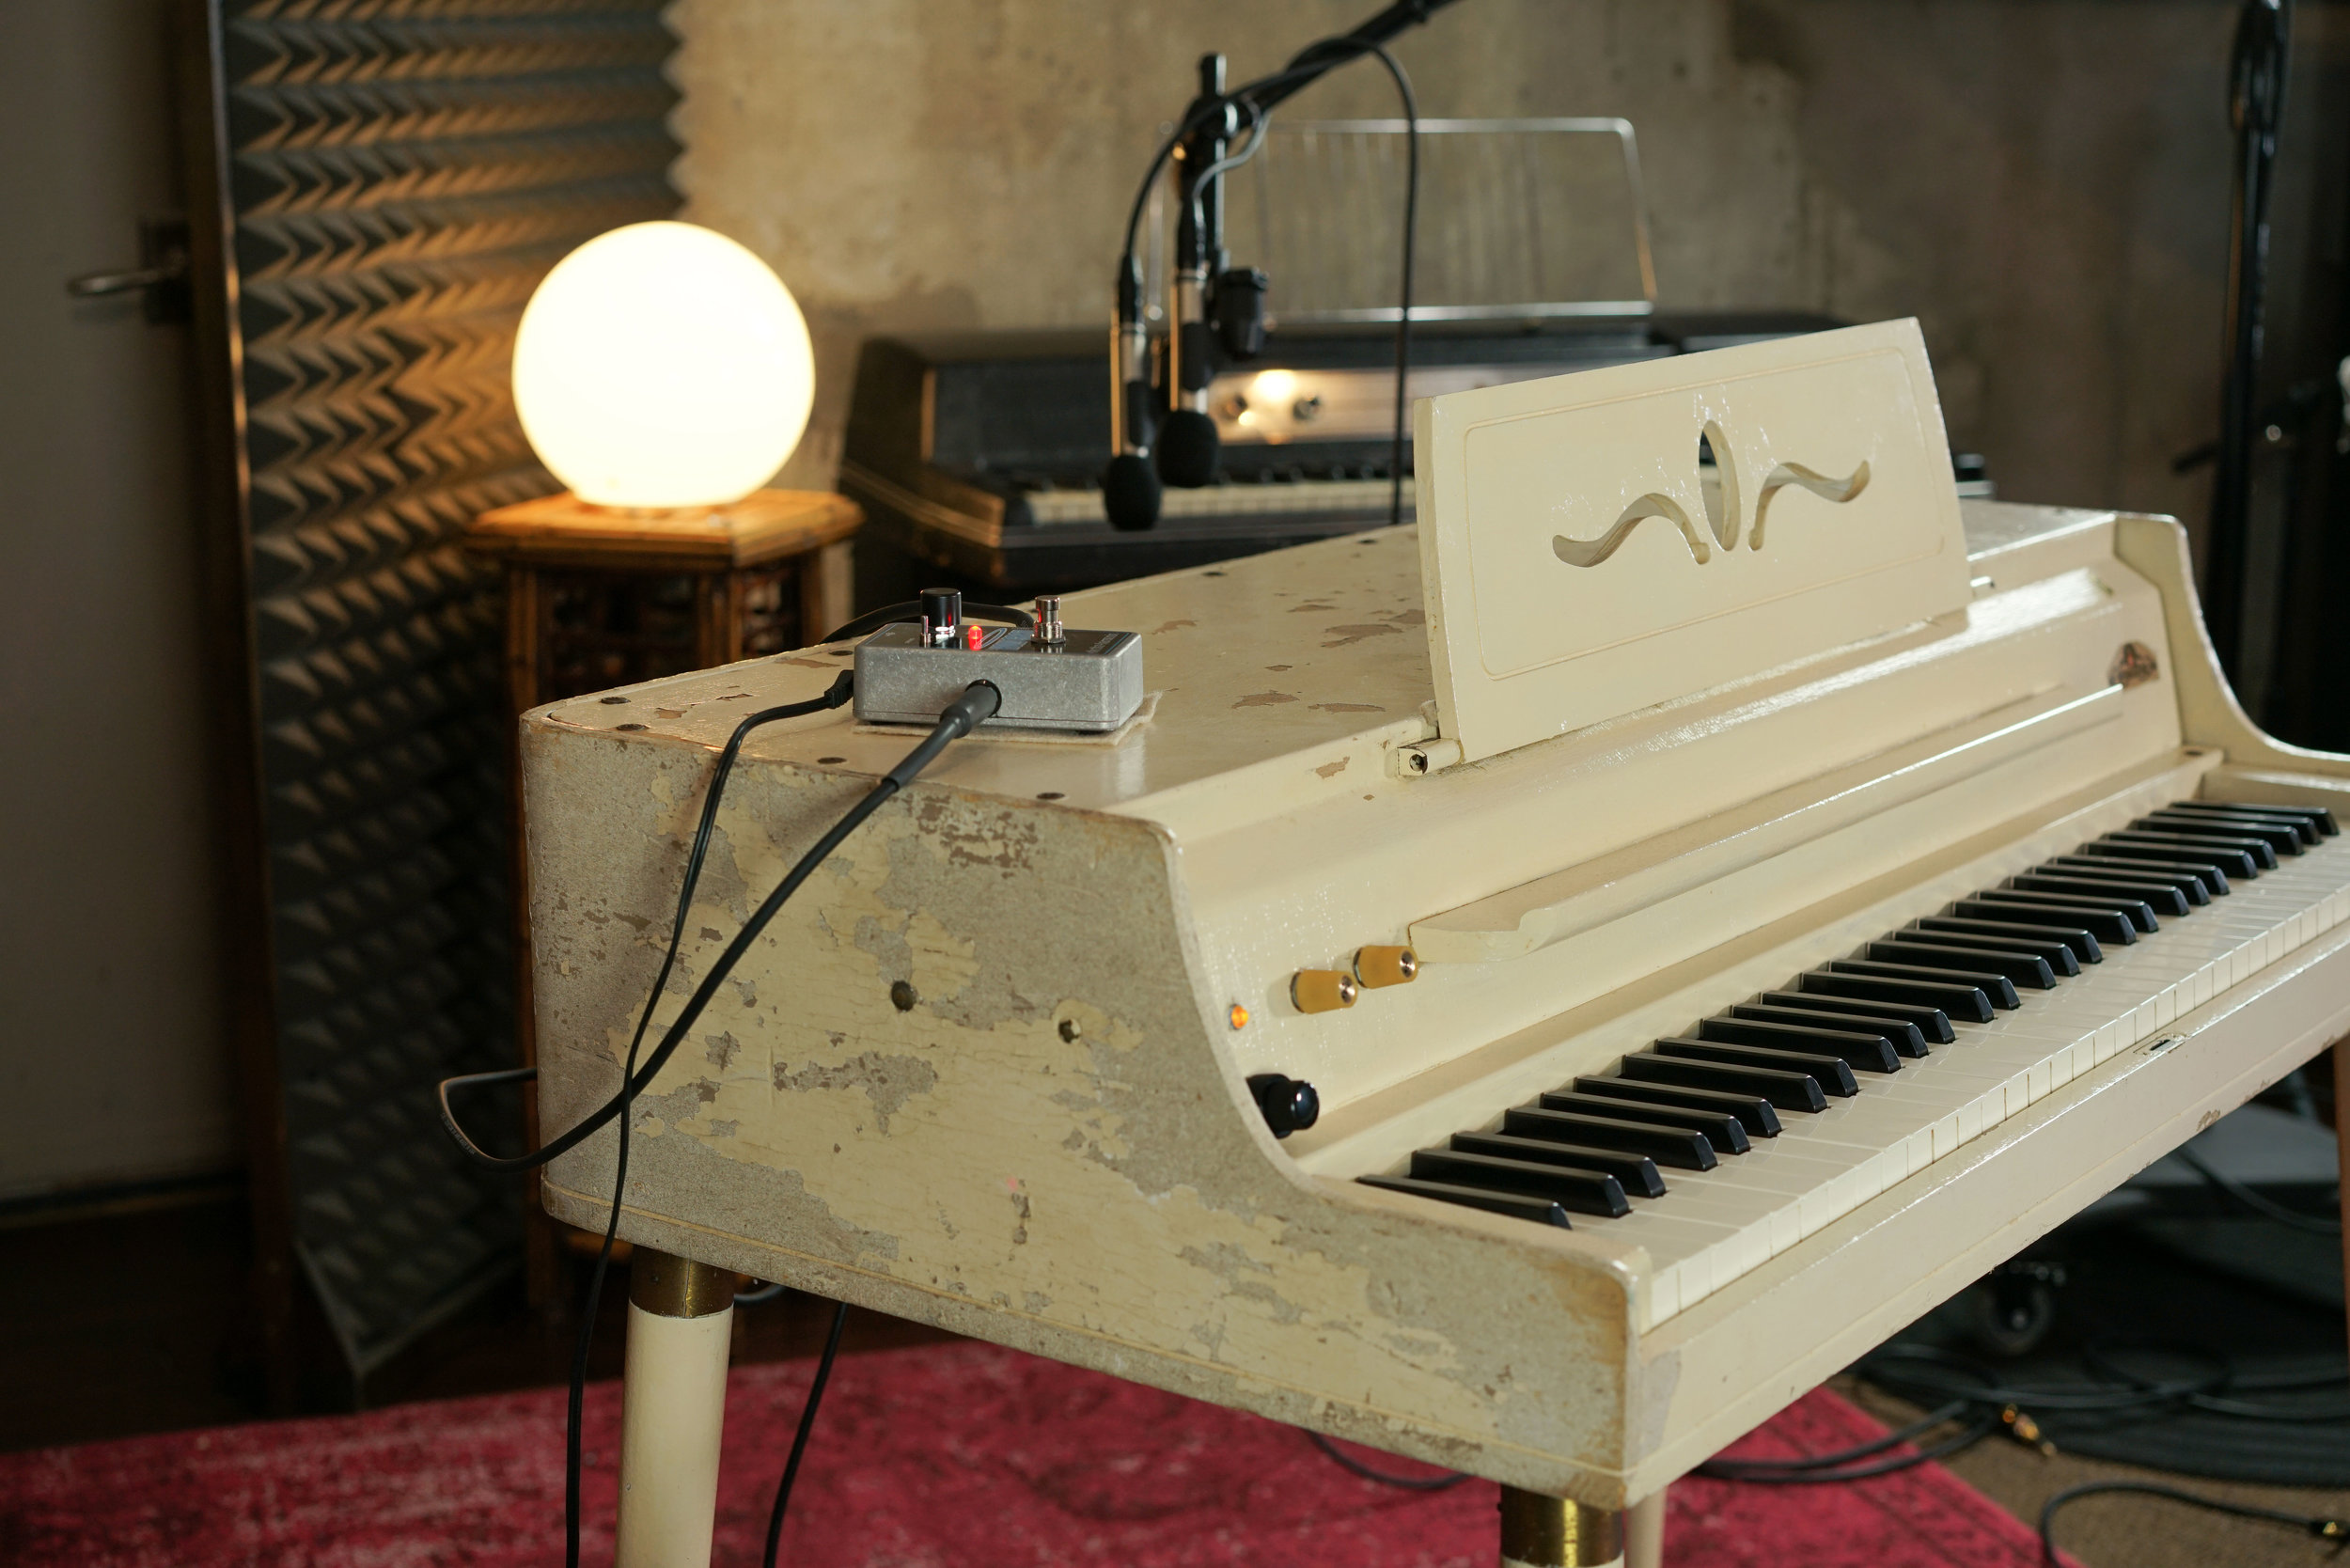 The Wurlitzer 145 after its restoration. We installed a new amplifier with a tube fx loop.